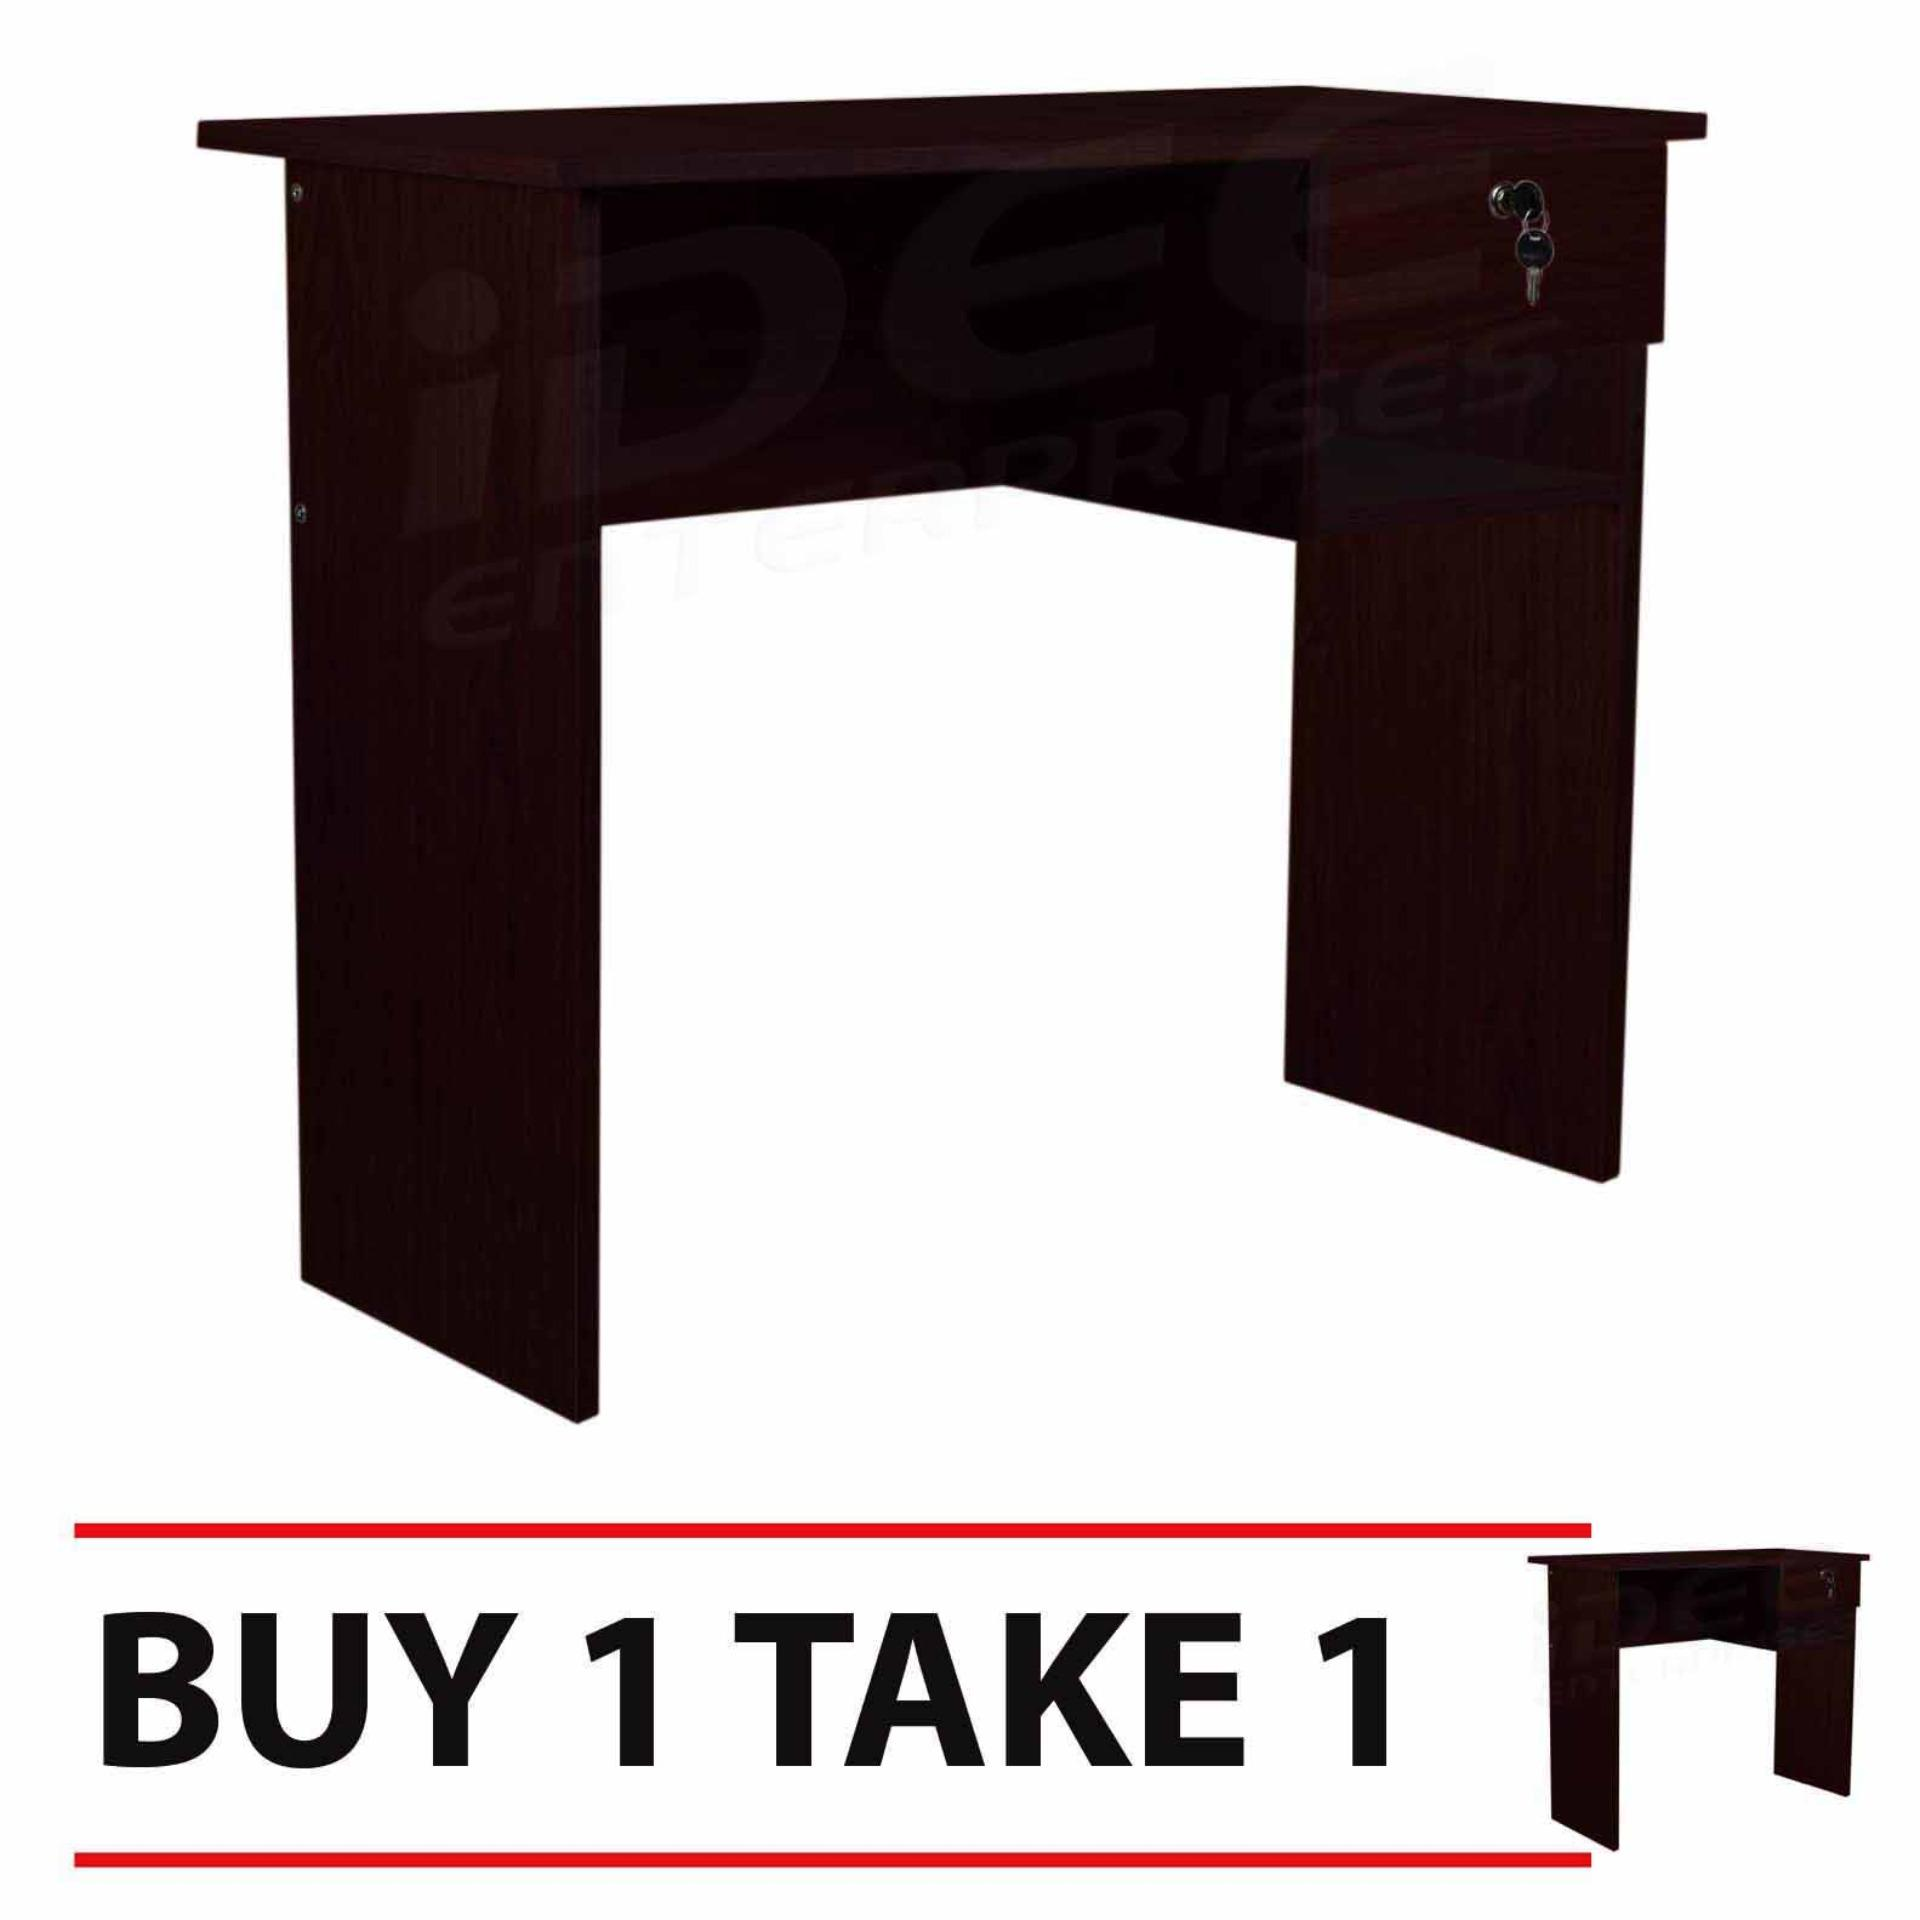 Tailee Furniture 1304 Office Table Wenge 1 Take